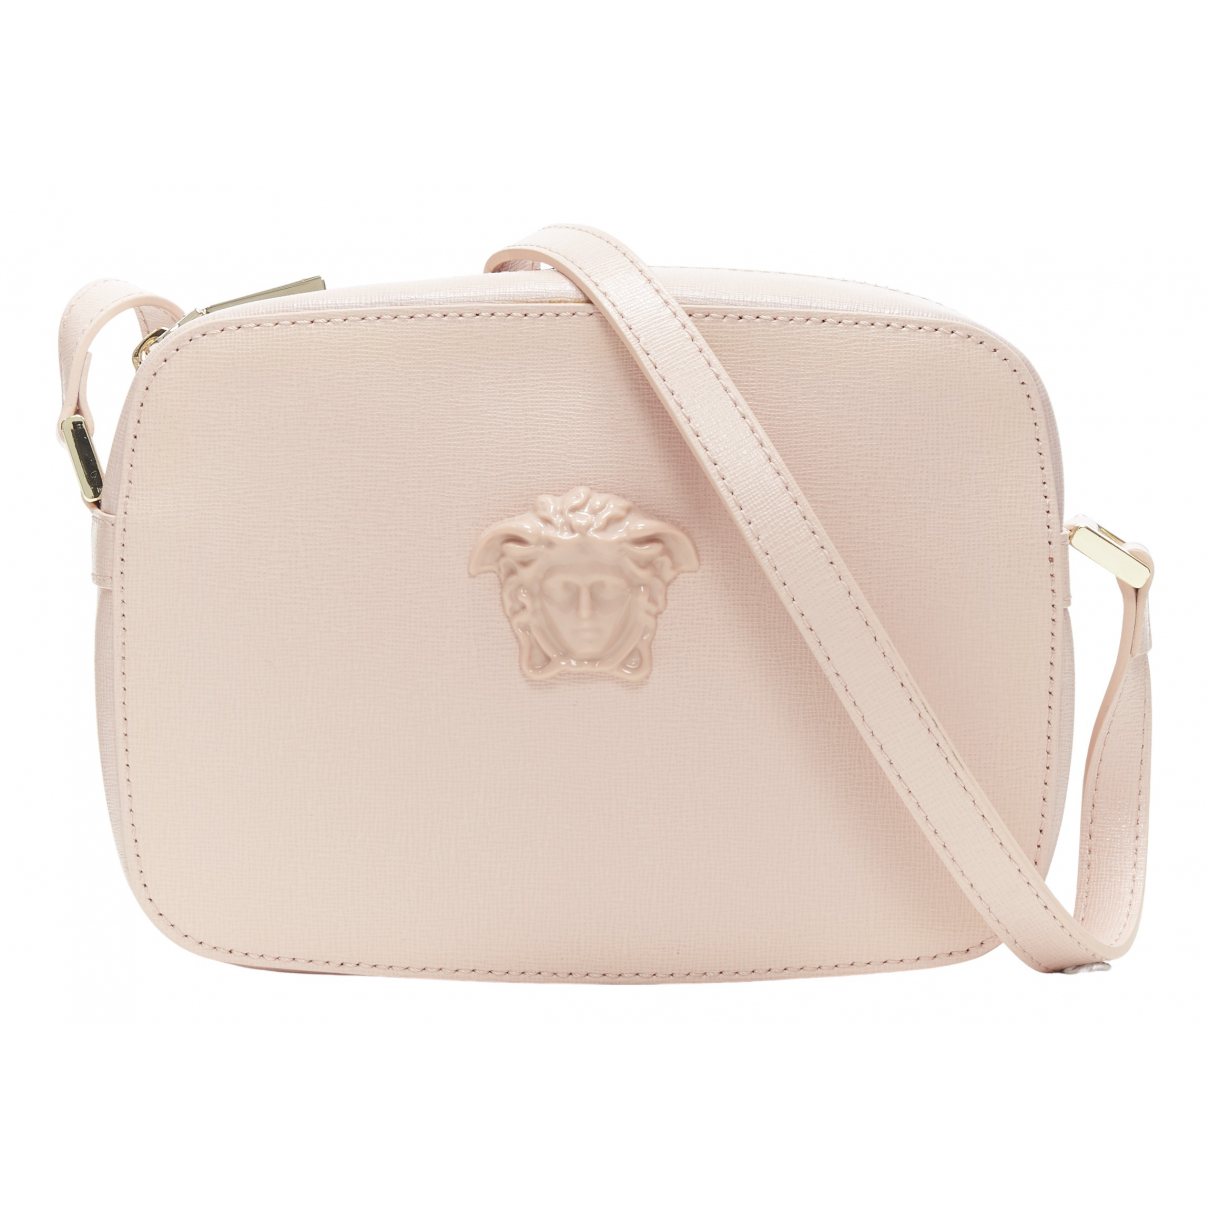 Versace N Pink Leather Clutch bag for Women N